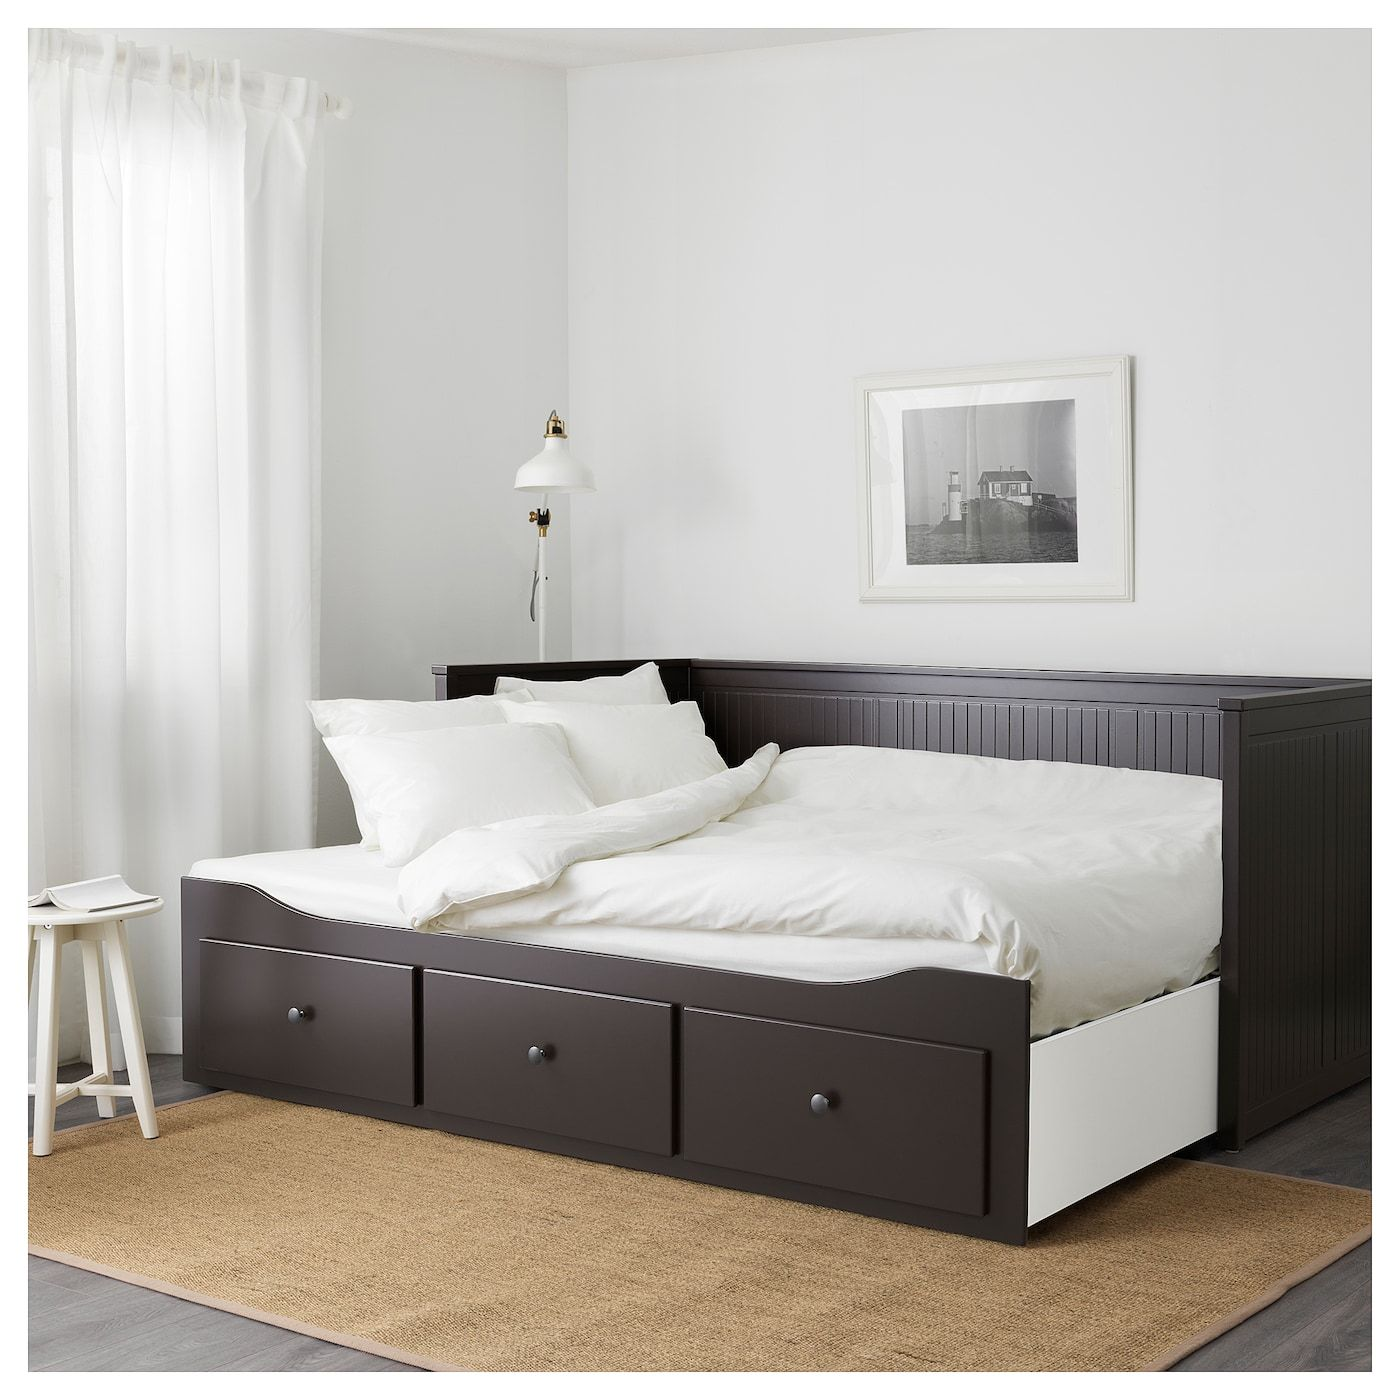 Hemnes Daybed Frame With 3 Drawers Black Brown Ikea Hemnes Mattress Springs Ikea Hemnes Daybed